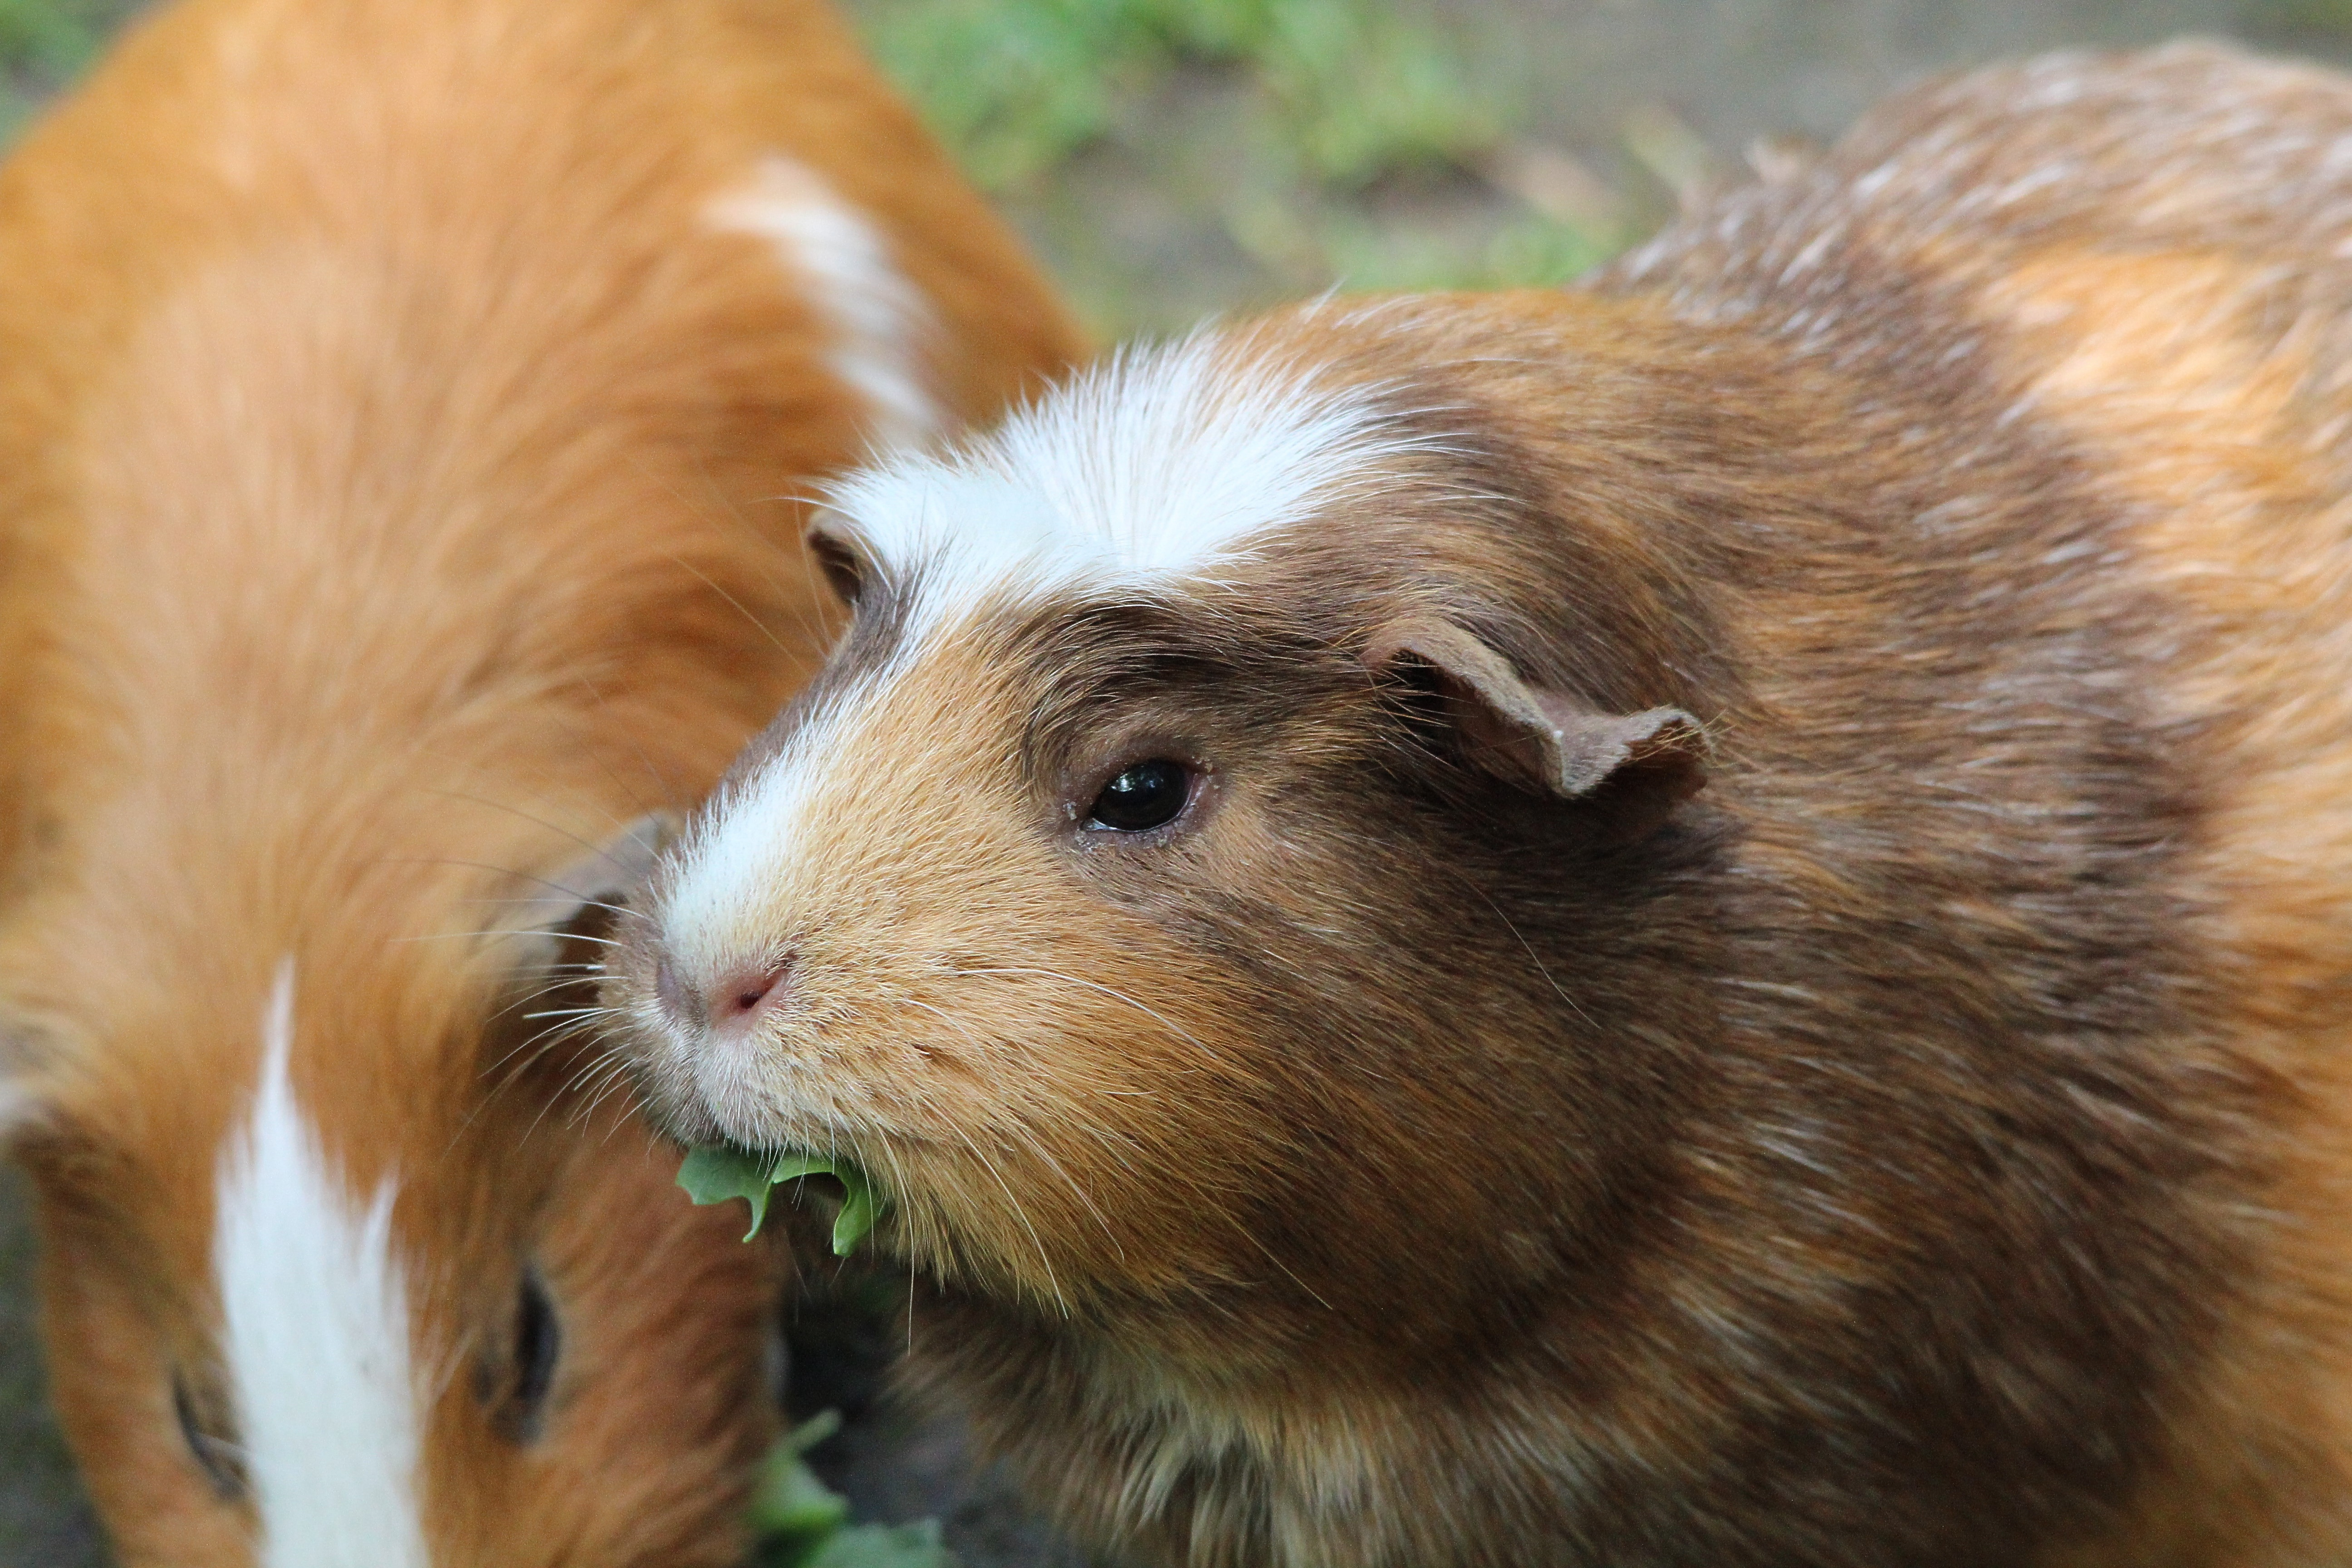 Eating grass guinea pigs free image for Guinea pig pictures free